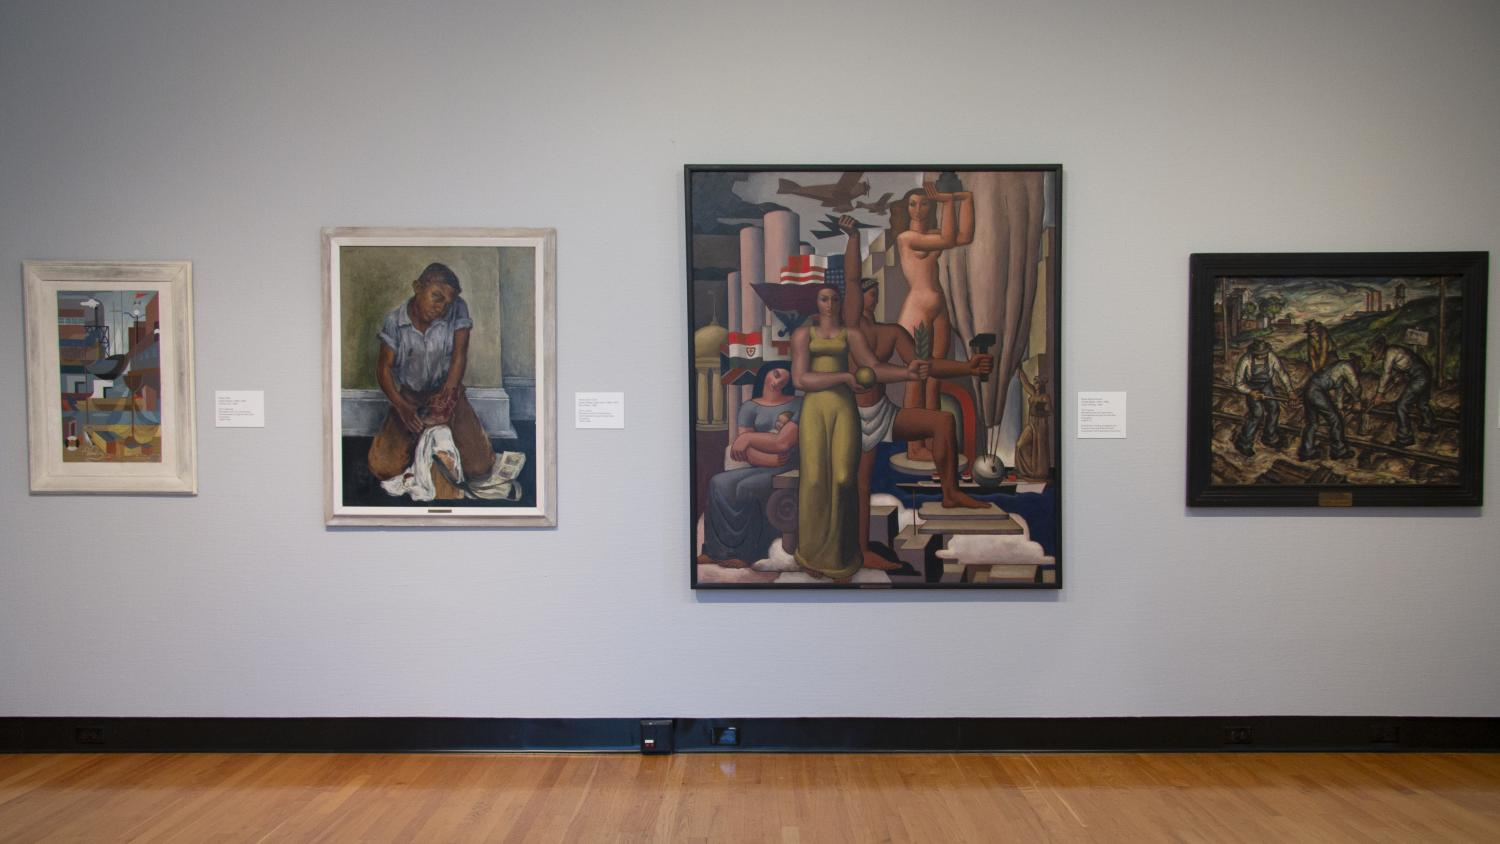 All This Beauty and Color: Highlights from the WPA, installation at Krannert Art Museum, University of Illinois, 2019.